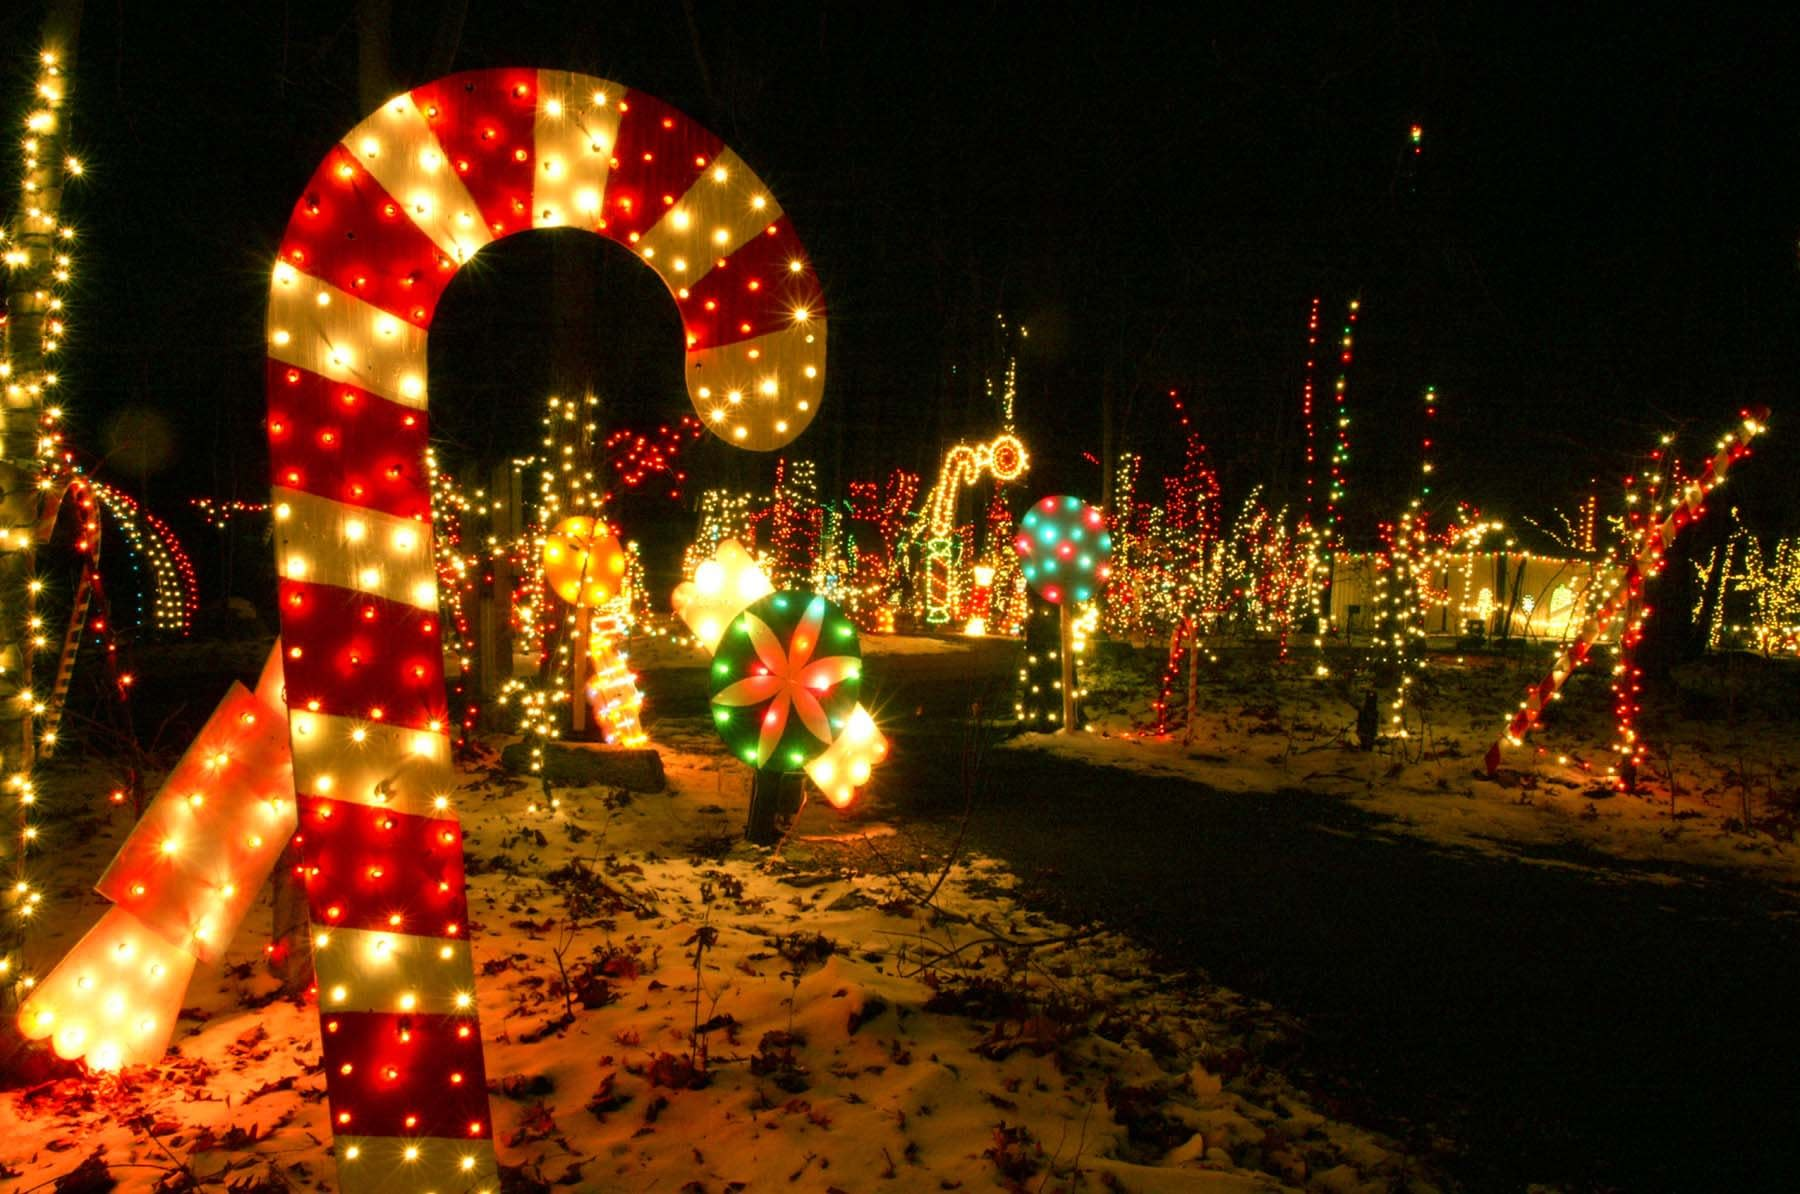 December's Featured Getaway: Build holiday traditions in York County